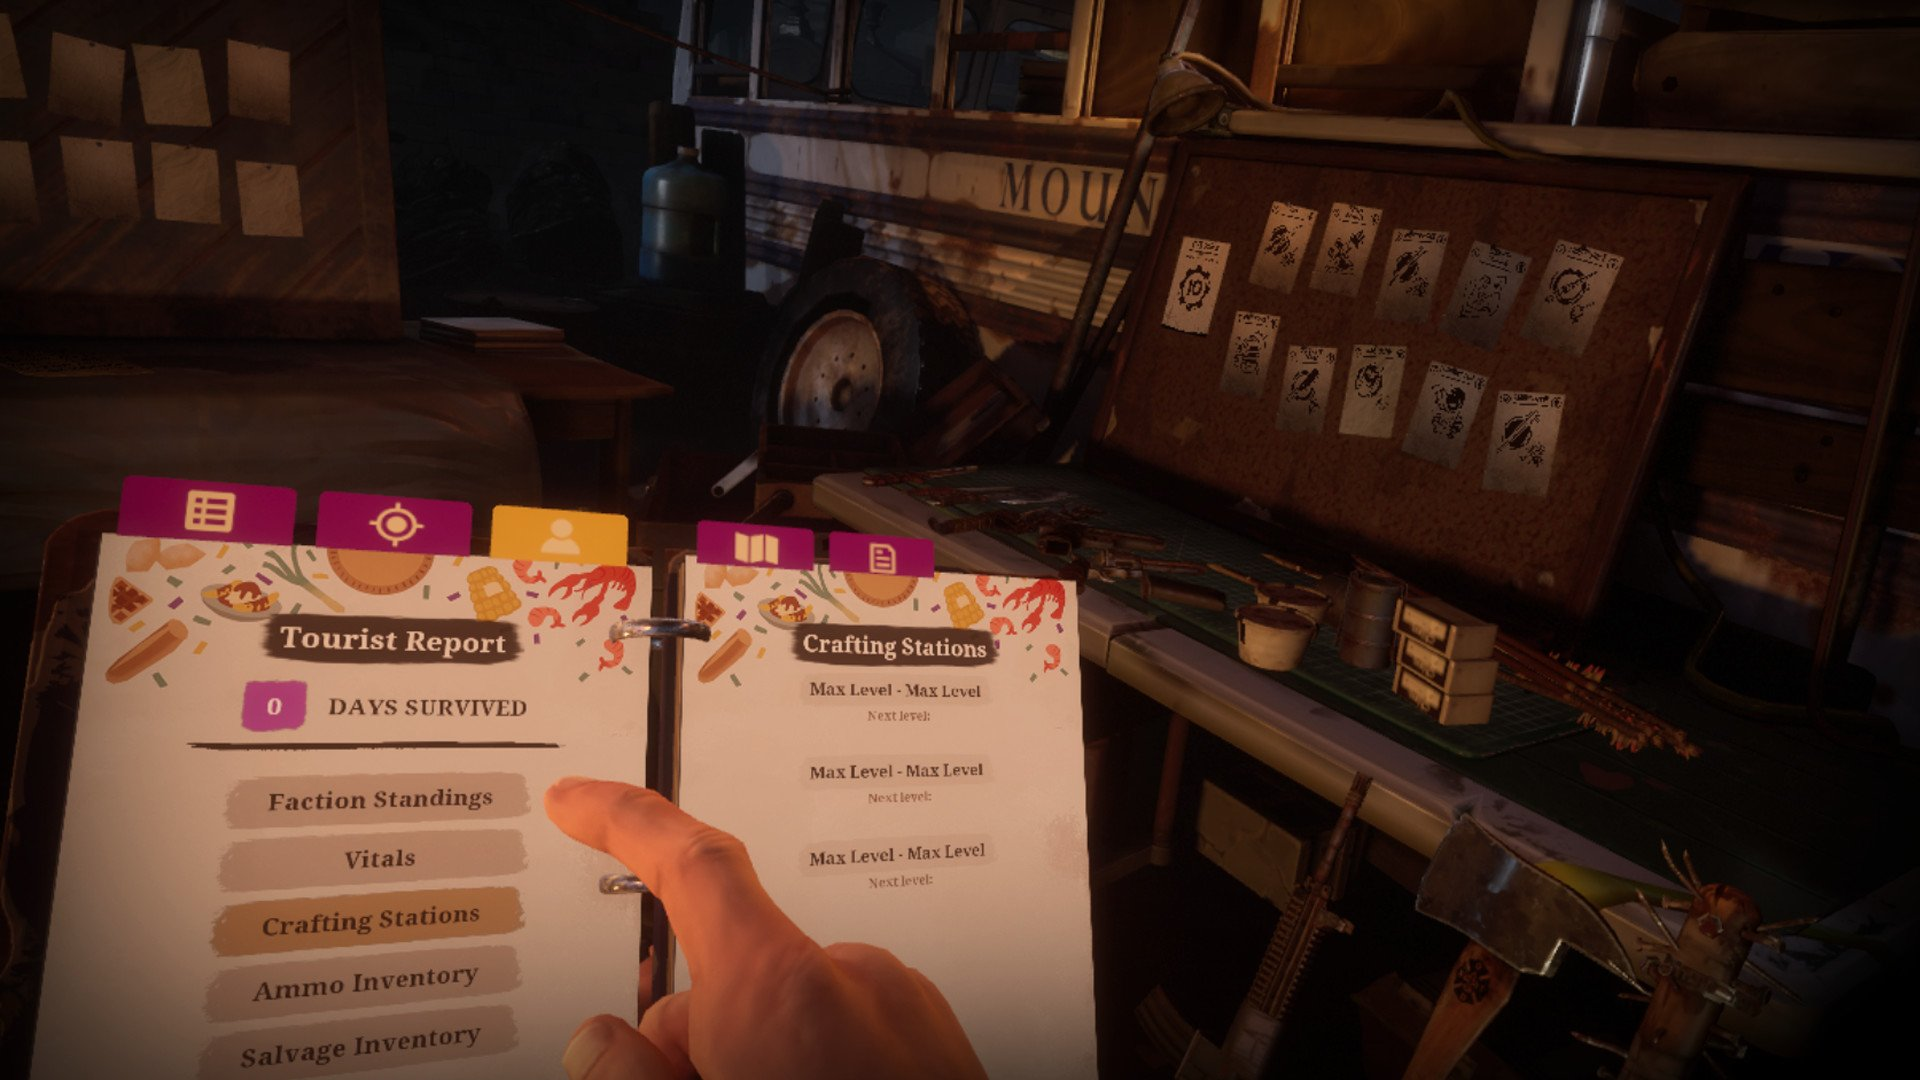 The Walking Dead: Saints & Sinners has a surprisingly detailed crafting system.